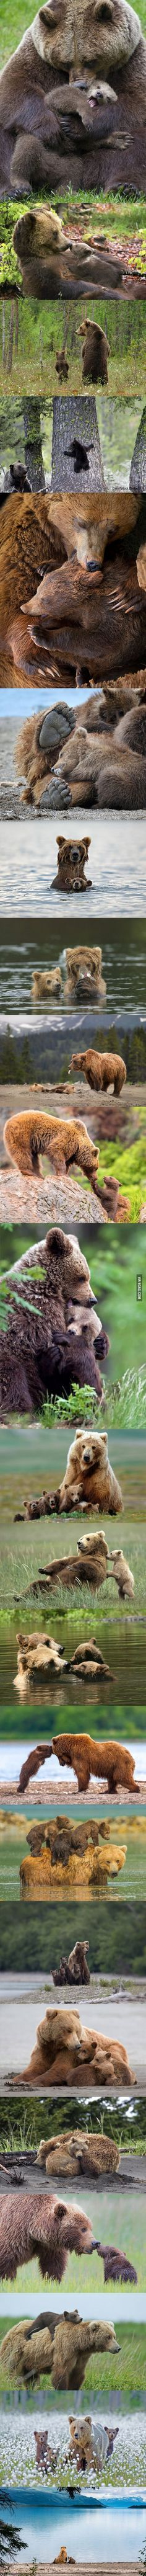 For the picture of Momma bear carrying her child, here is the picture set